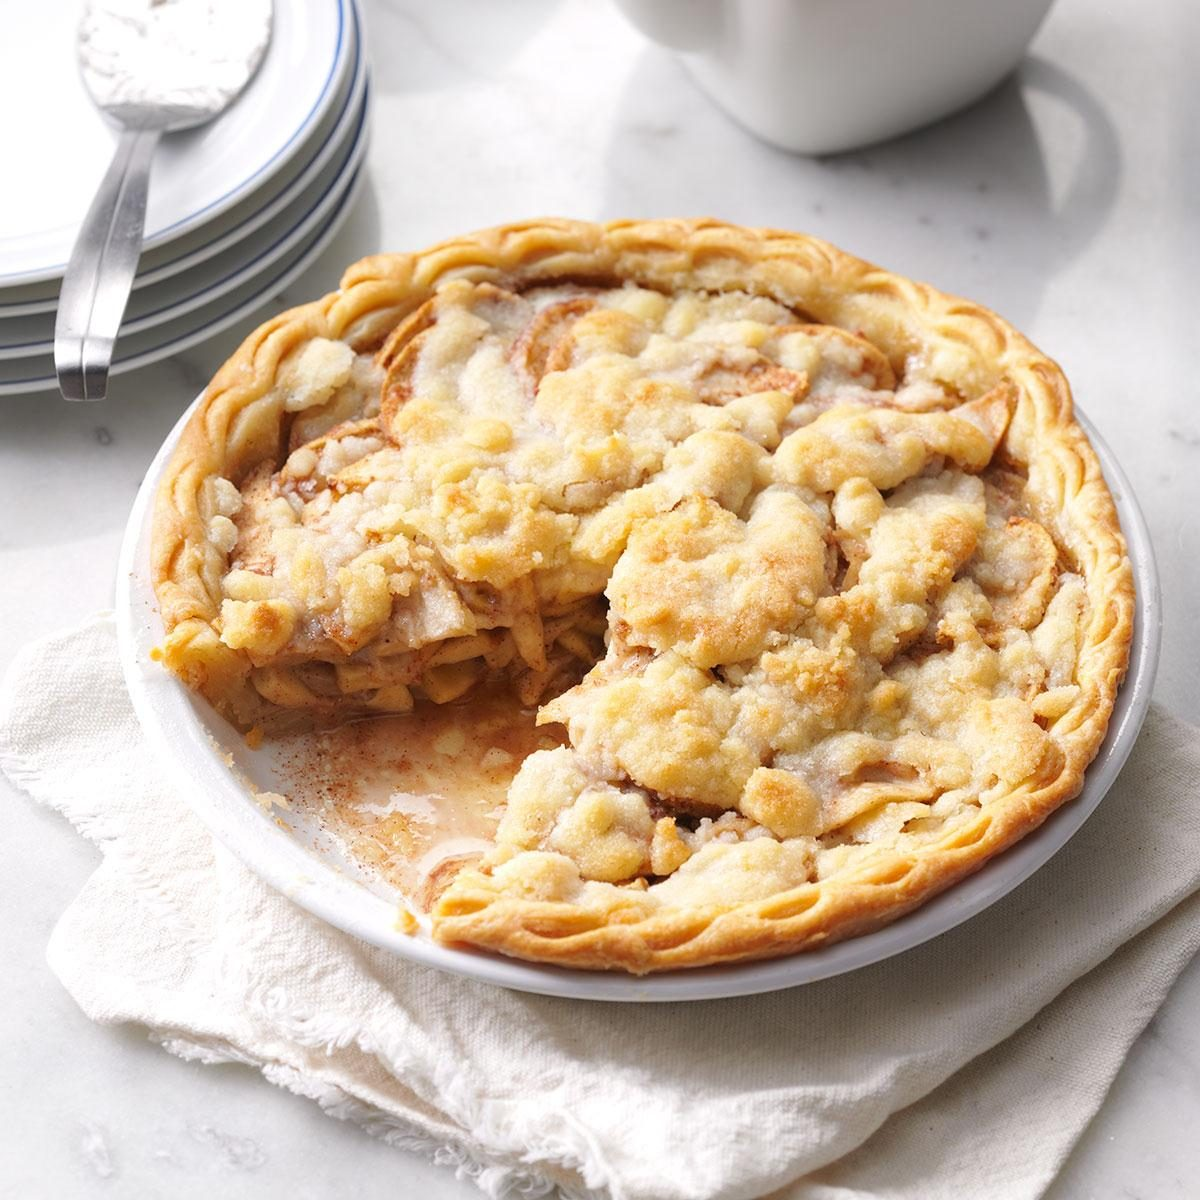 Apple Crumble Pie Recipe | Taste of Home